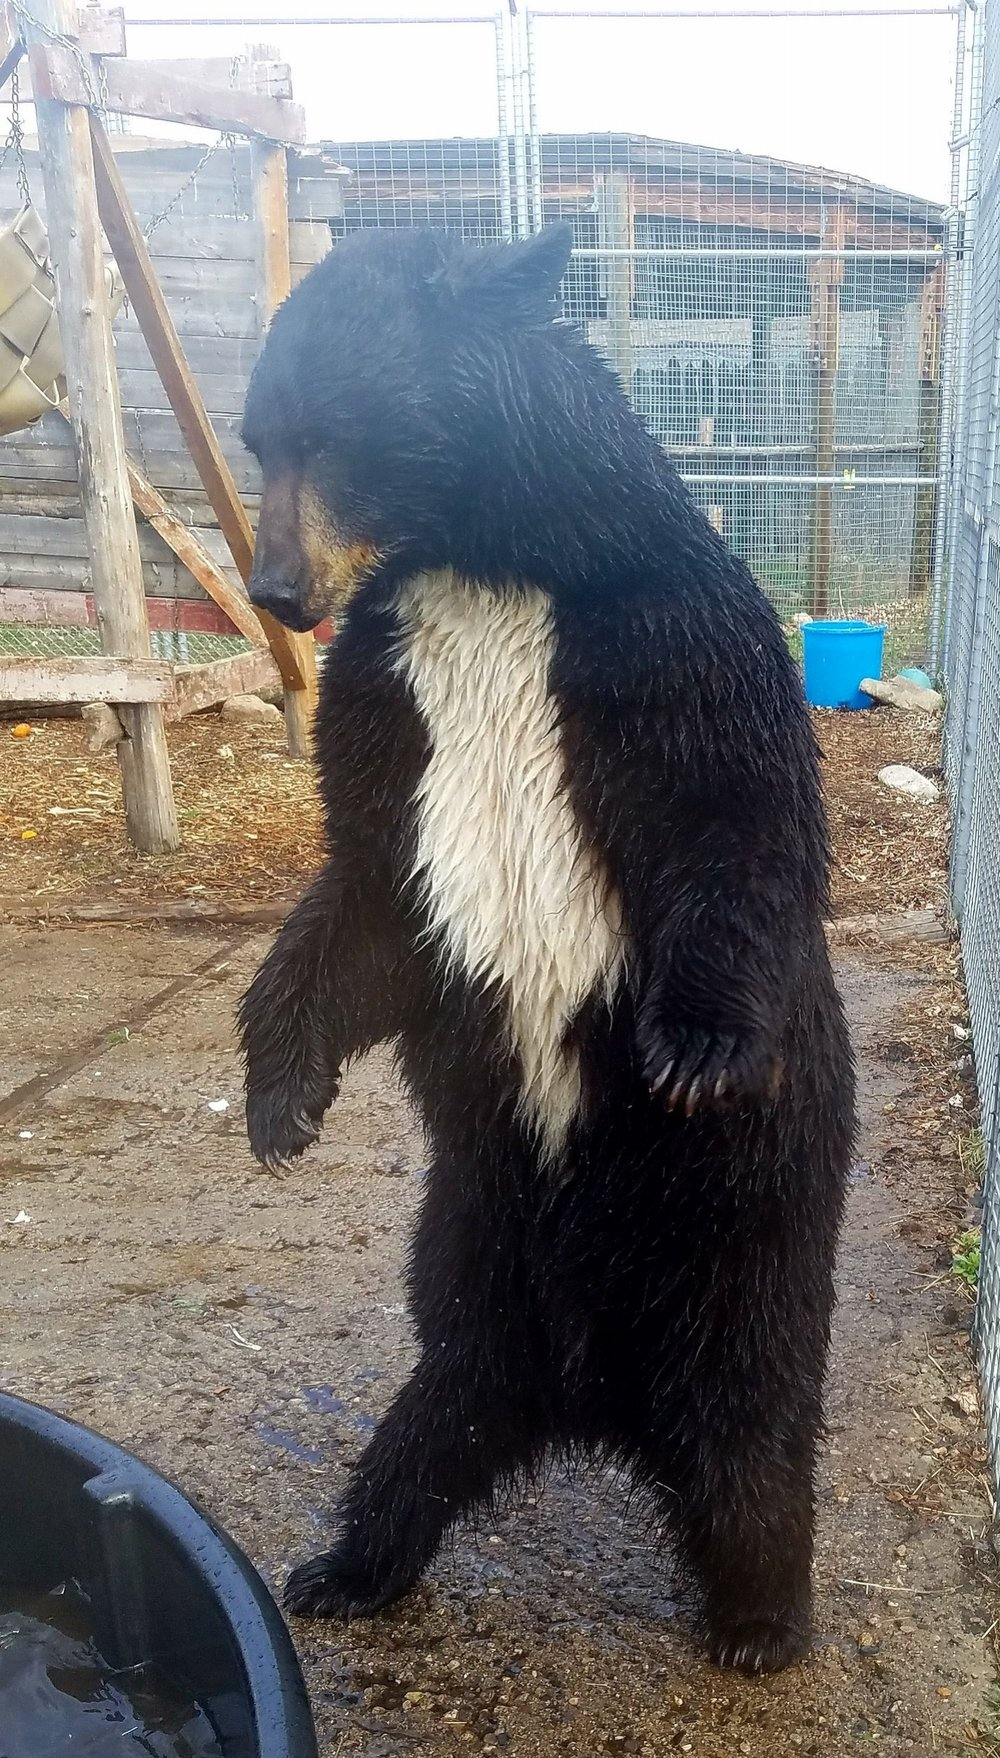 BlueBeary is one of our black bears. She loves water, and she just finished splashing around in her pool.